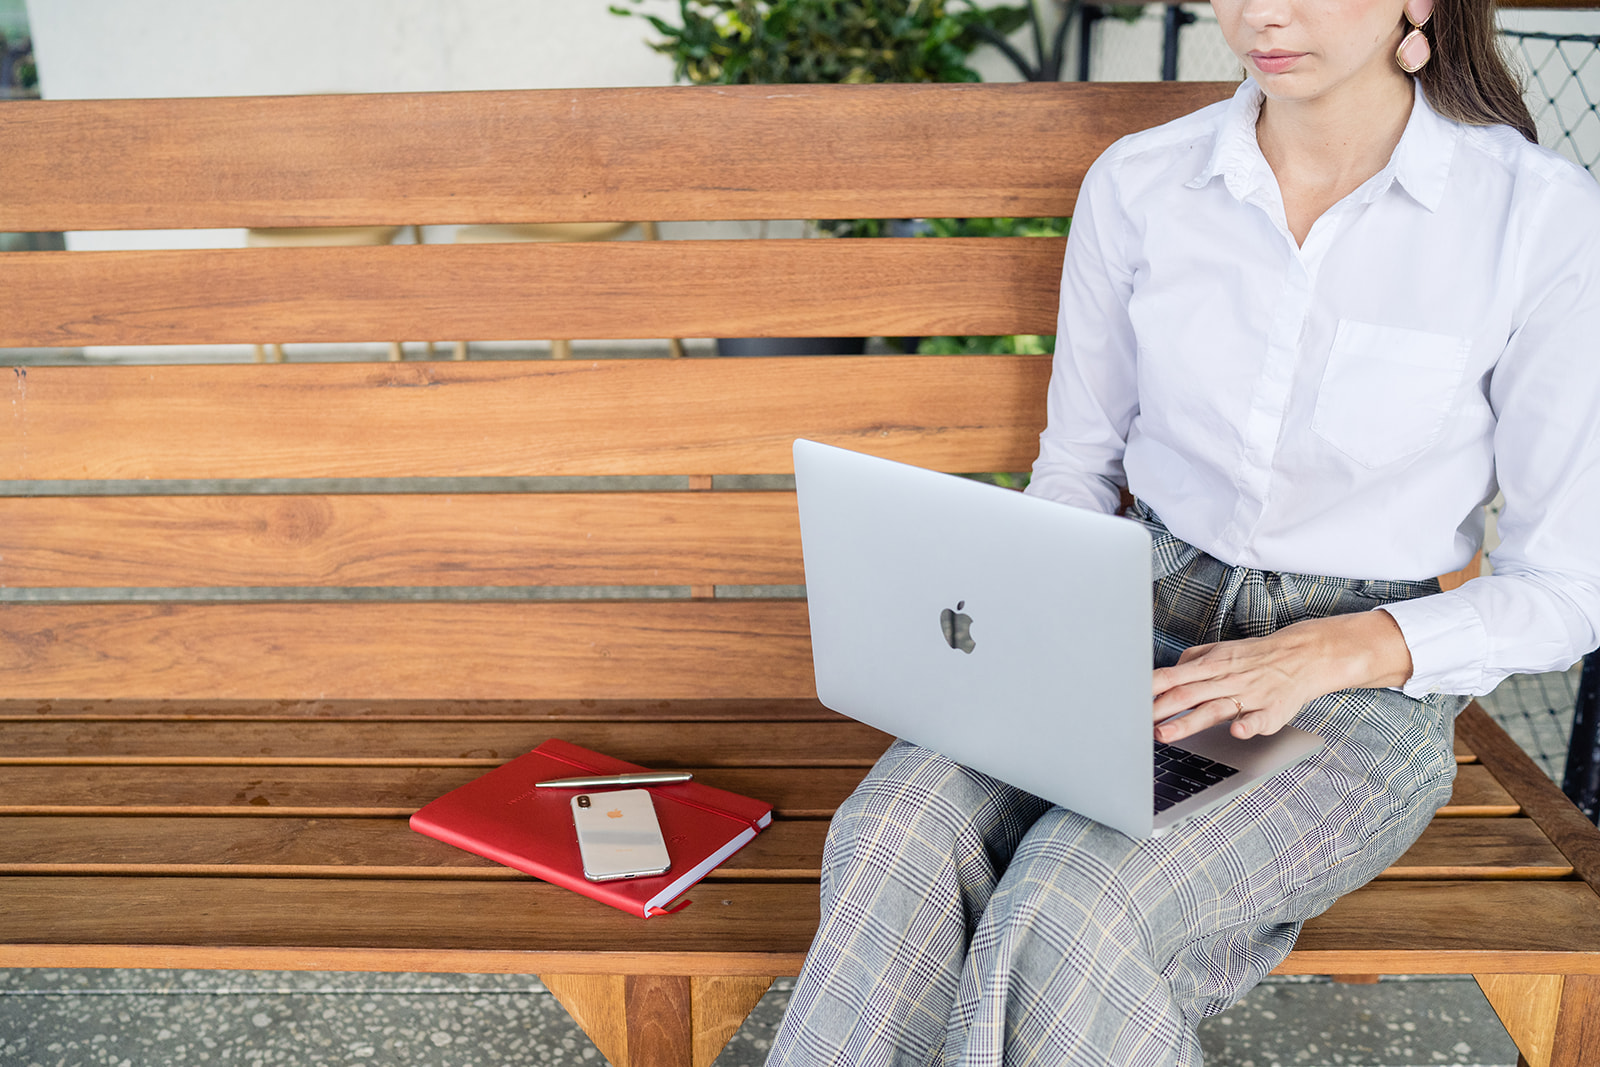 Woman sitting on bench typing on laptop